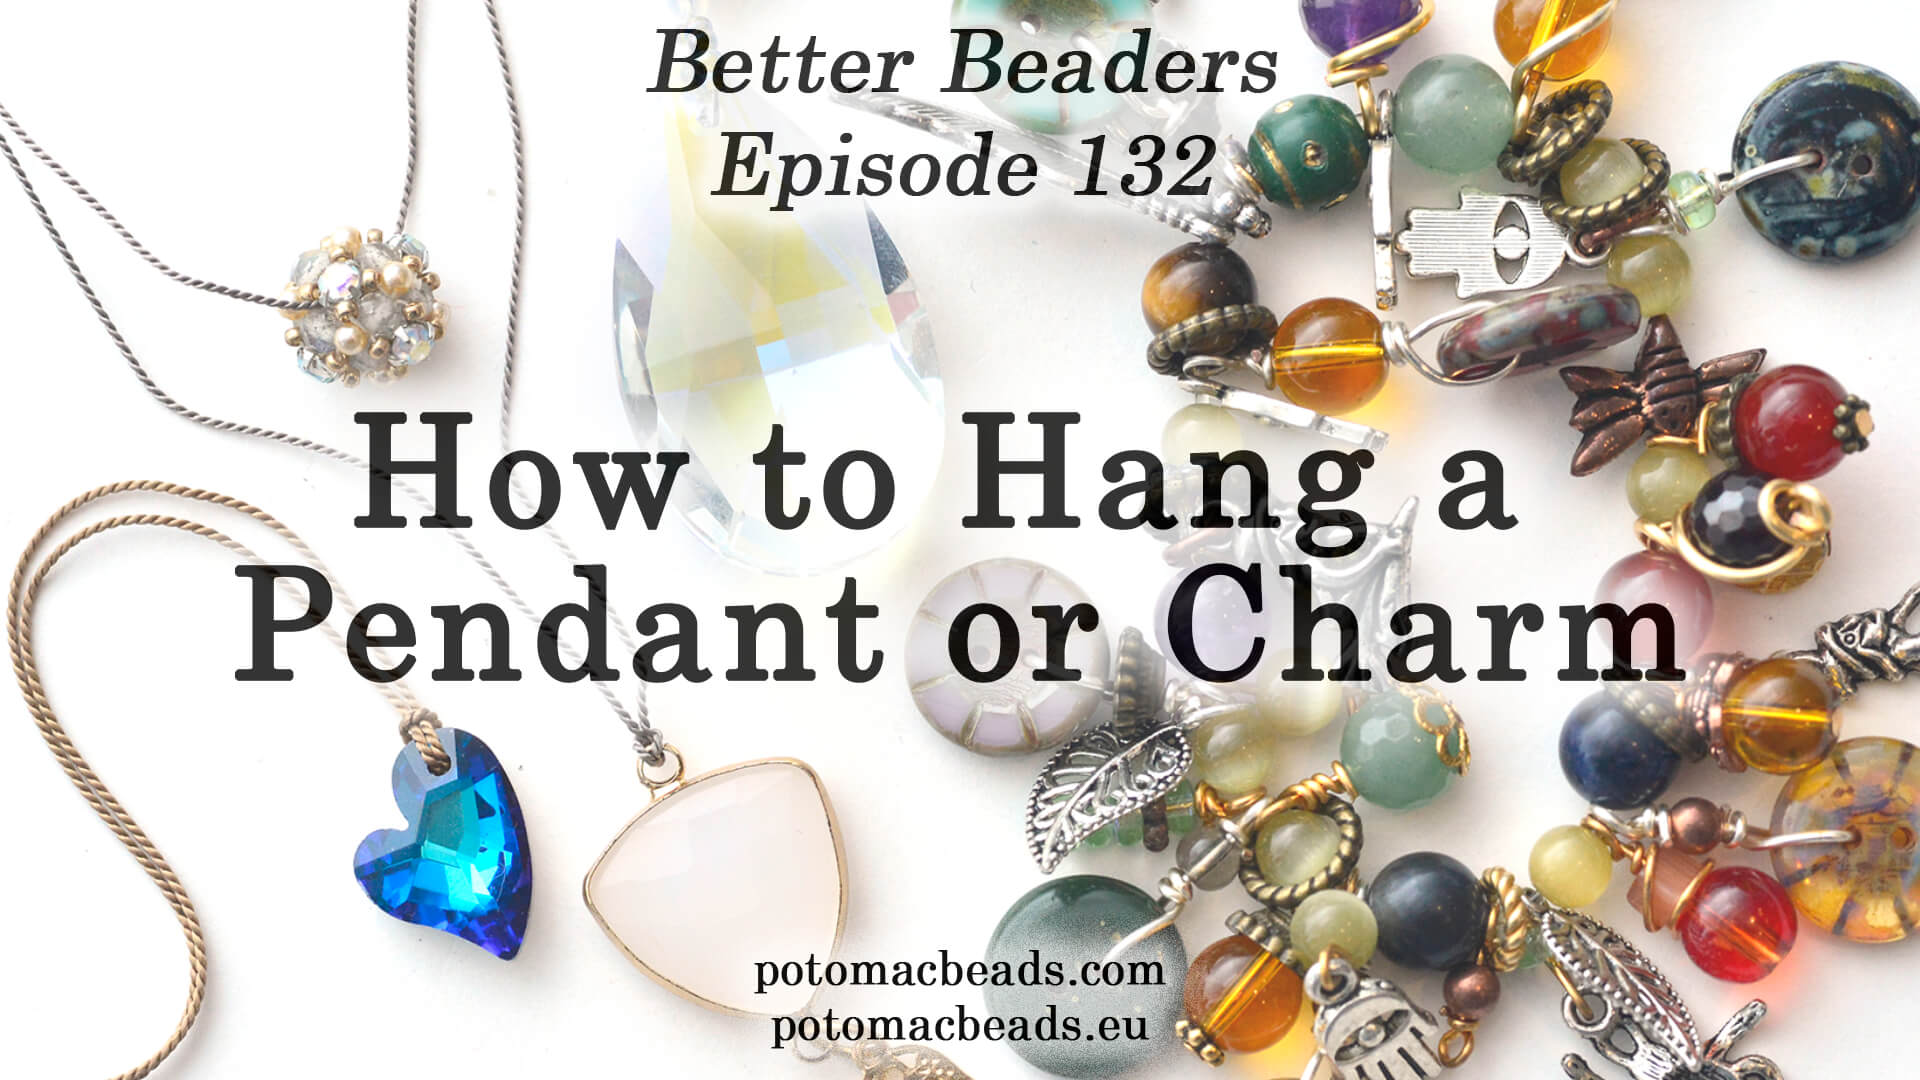 How to Bead / Better Beader Episodes / Better Beader Episode 132 - How to Hang a Pendant or Charm